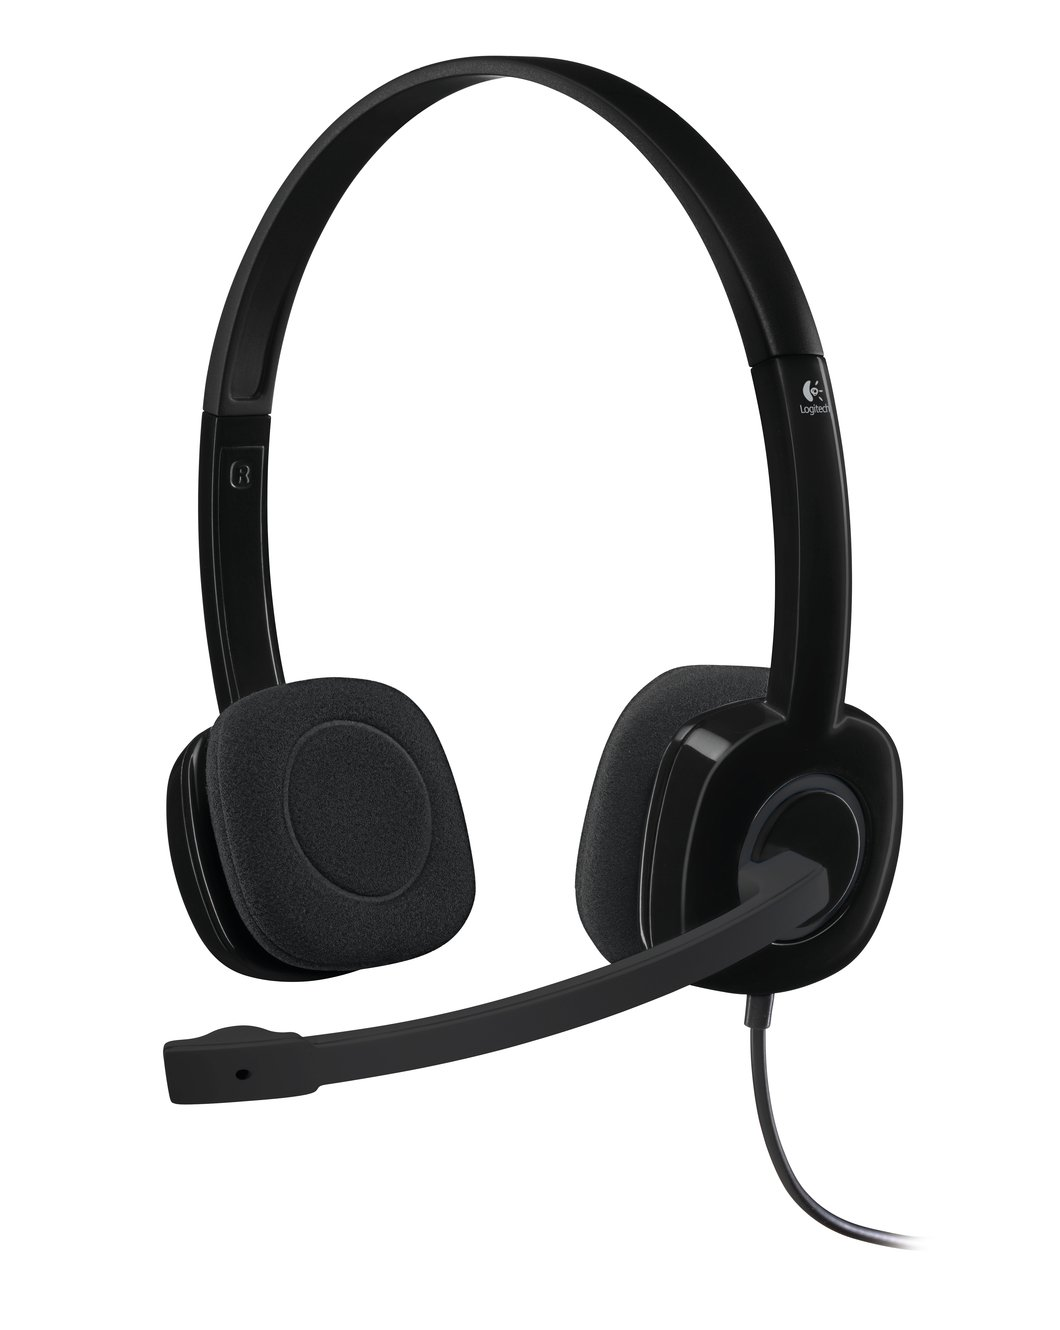 Logitech H151 Binaural Head-band Headset, Black, 981-000589 (Headset, Black)